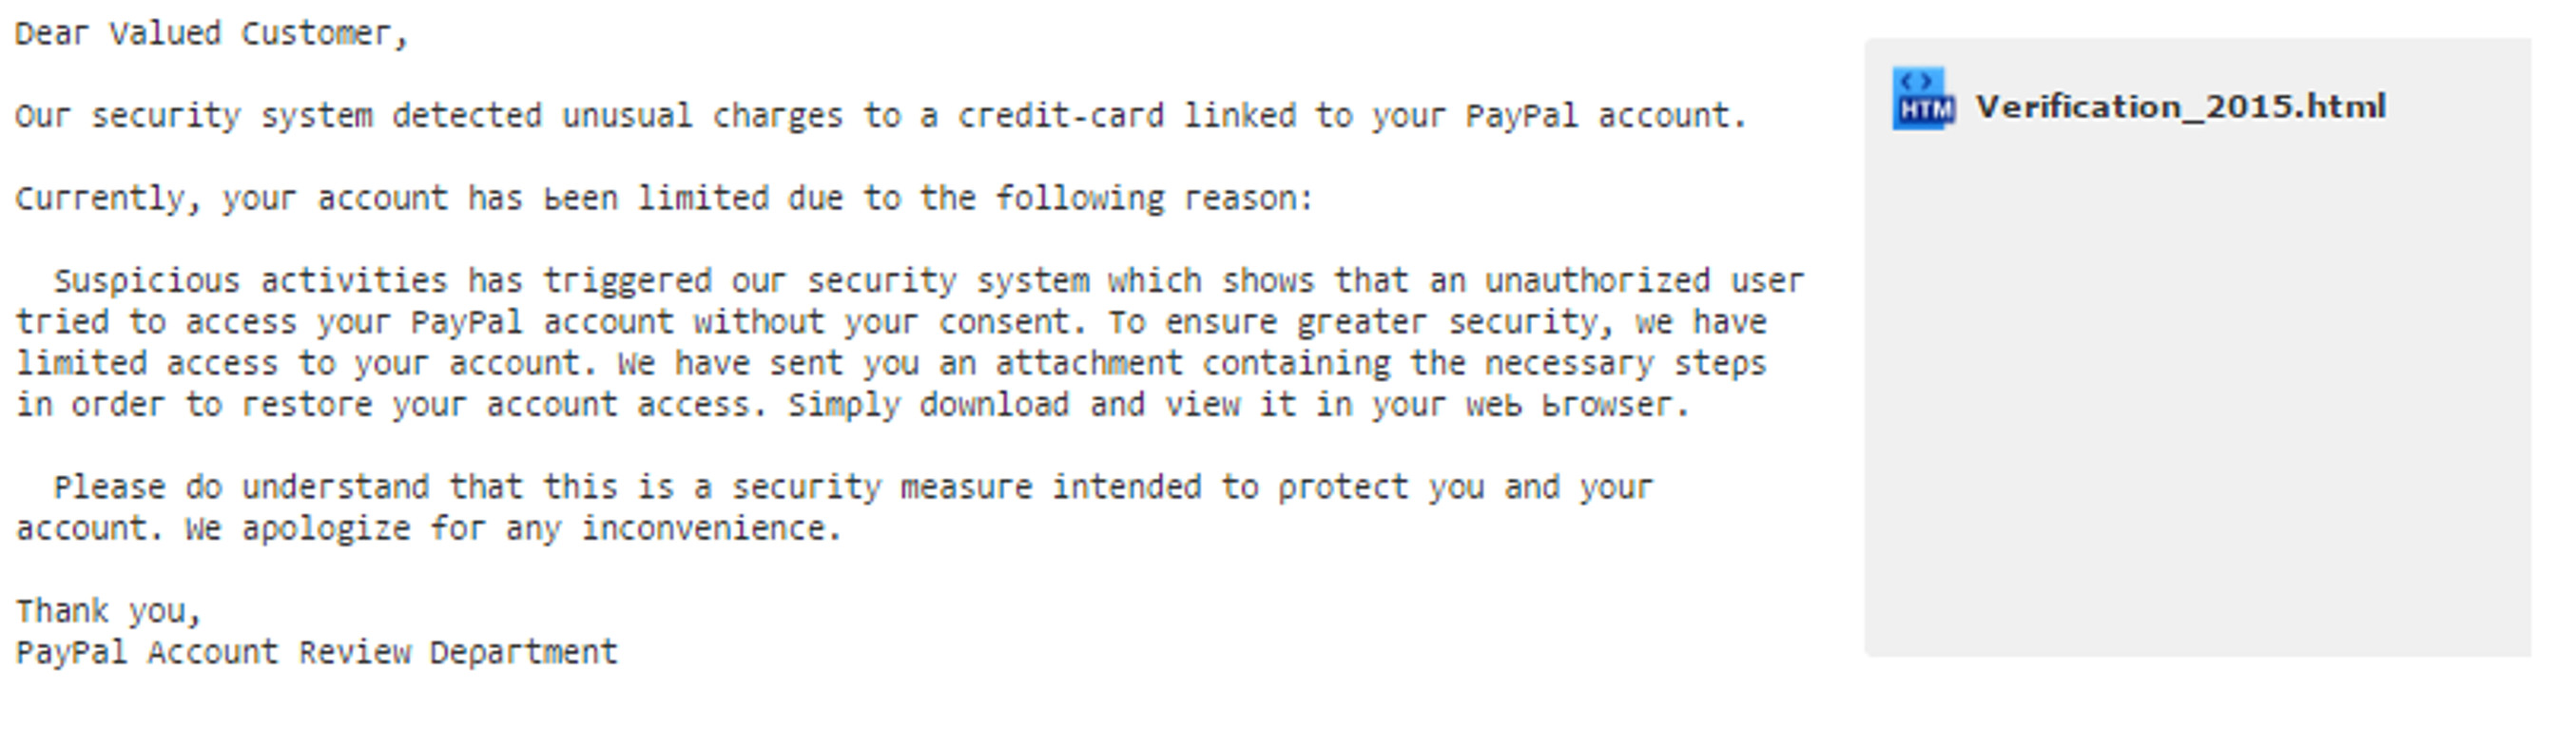 MailShark PayPal account review phishing email